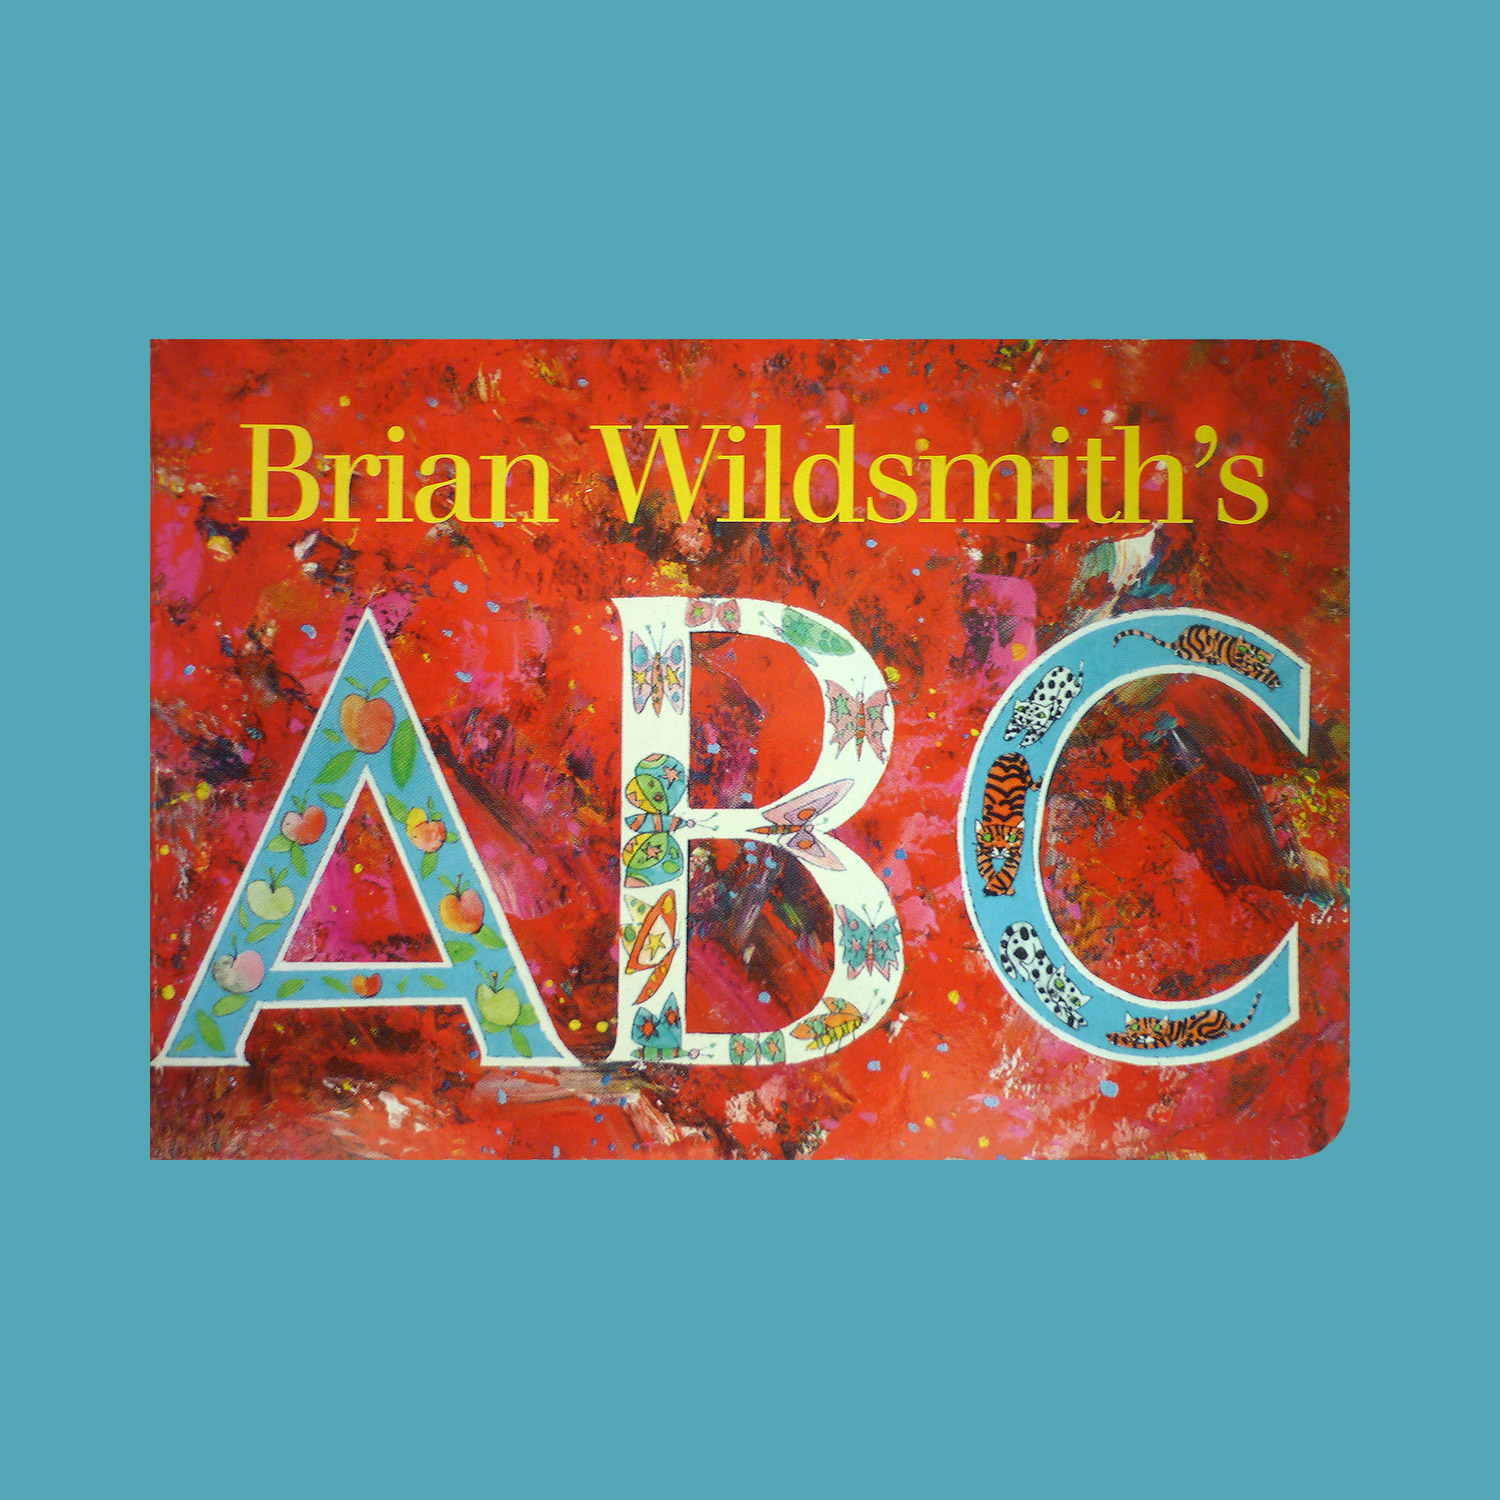 """BRIAN WILDSMITH'S ABC - 1996""""Brian Wildsmith's ABC does more than introduce children to the alphabet. It welcomes them to a celebration of each letter of the alphabet illustrated with wonderful, free-spirited art. Wildsmith, one of the world's leading illustrators, was awarded the Kate Greenaway medal for this ABC book. Now more than 30 years later, it remains fresh, vibrant, and enticing. Share it with a child you love.""""""""Wildsmith's brilliant illustrations...are sure to encourage preschoolers to learn their ABC's.""""School Library Journal"""